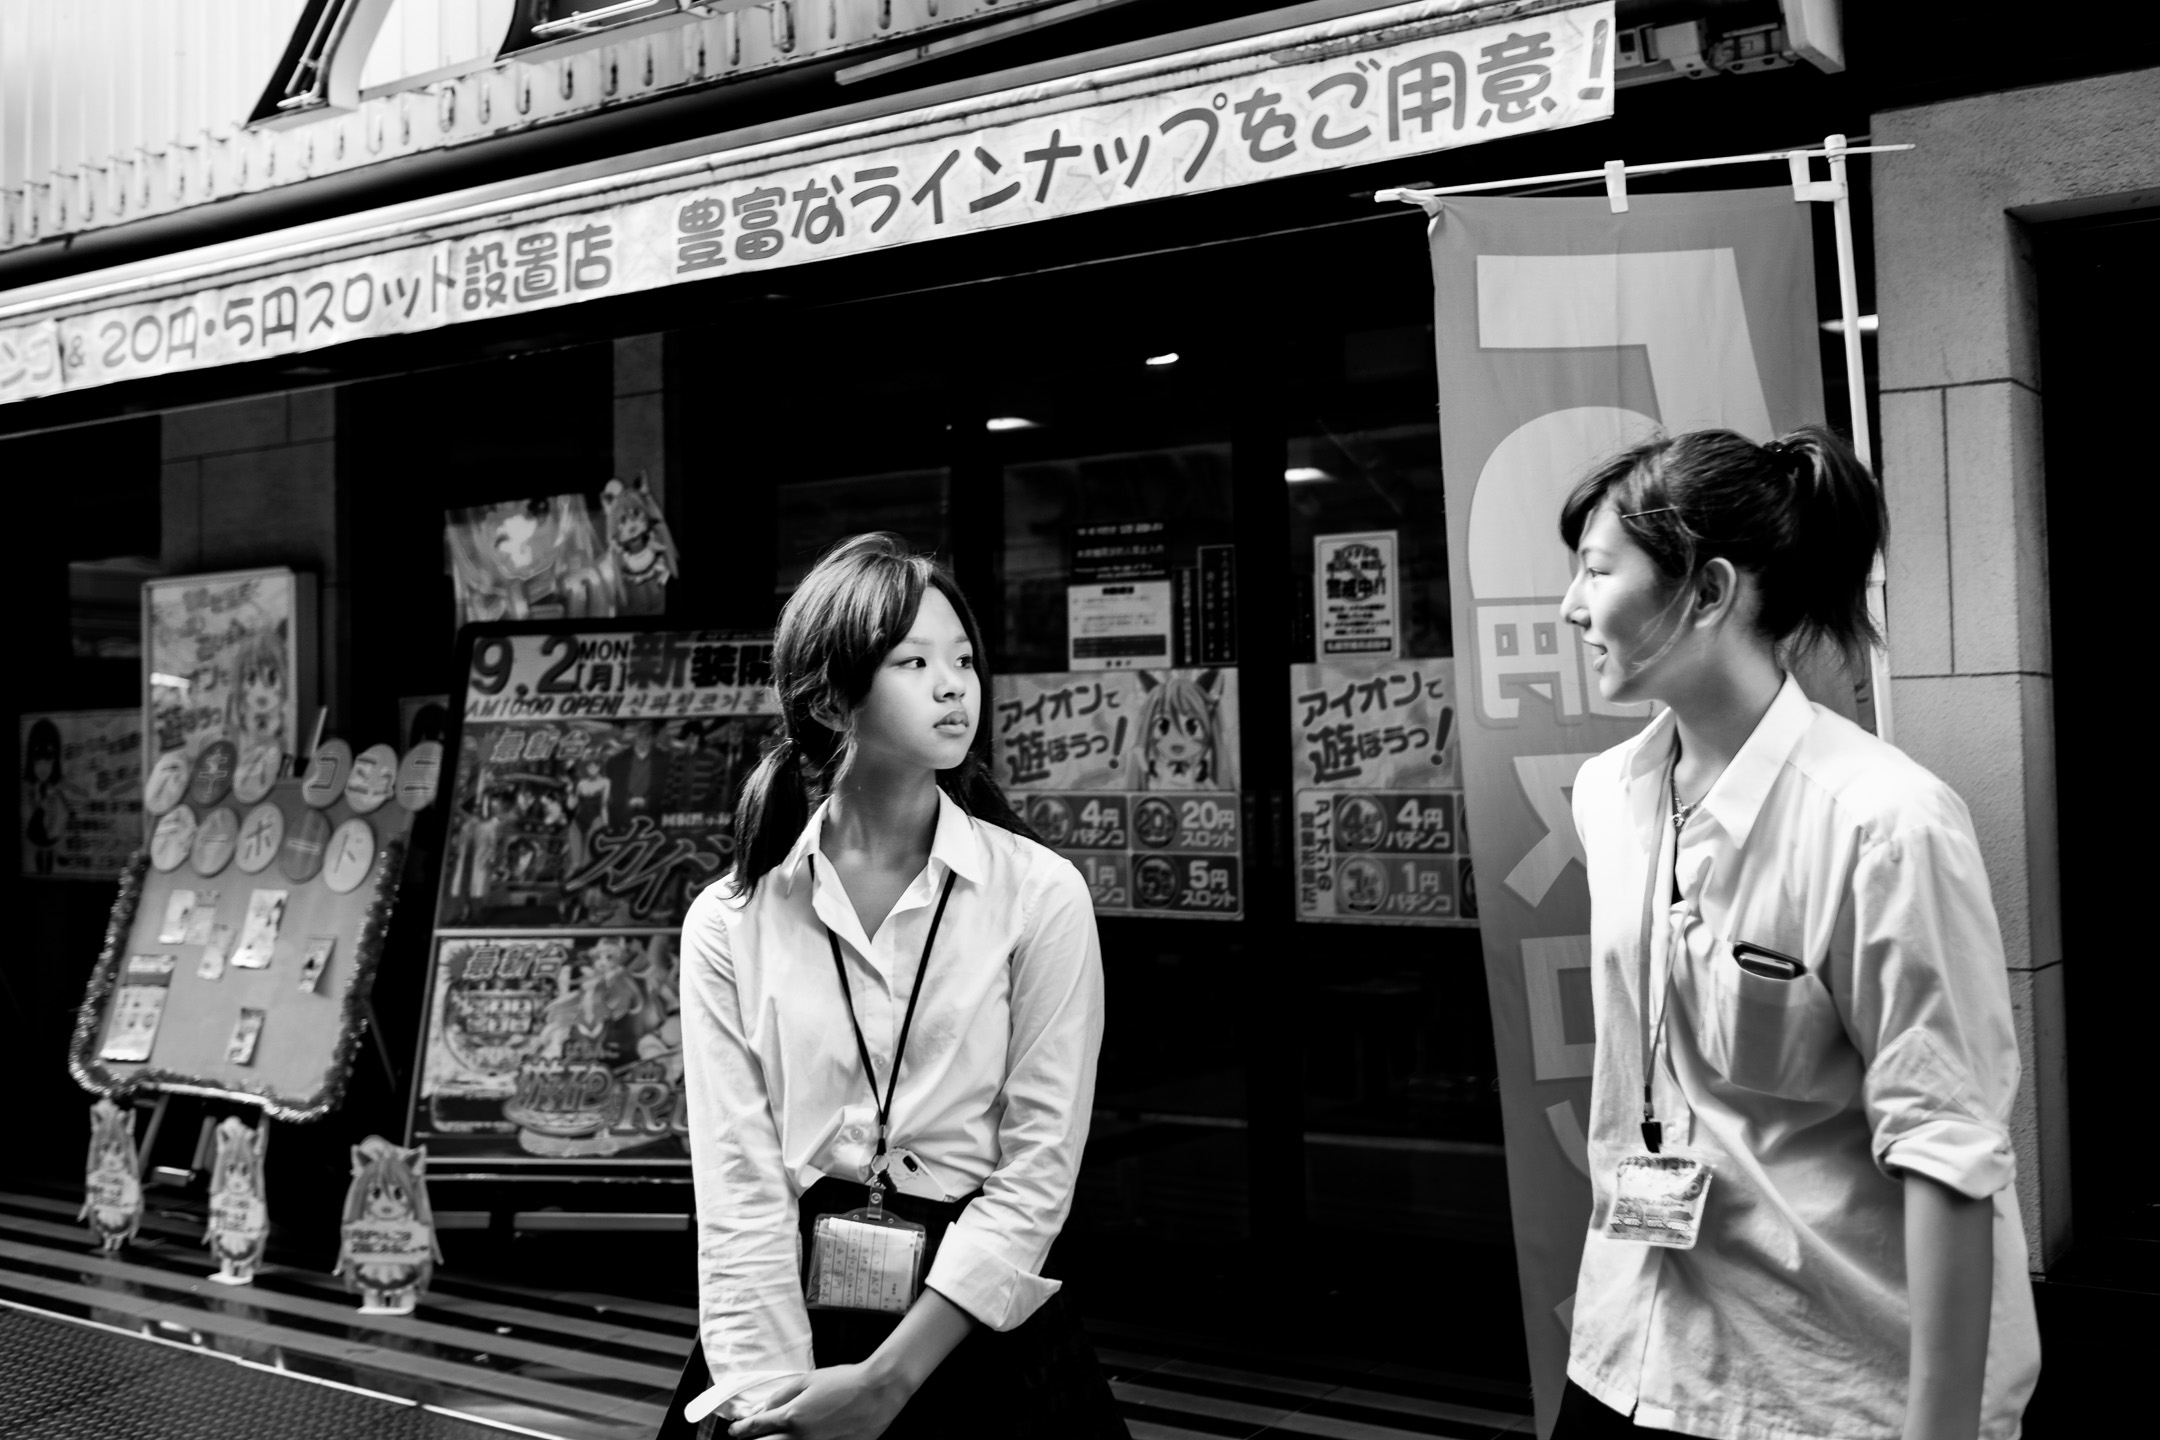 Fujifilm X-M1 - 23mm f/1.4 - 1/320 - f/2 - iso200 I'm always on the lookout for elegance and that's a quality that a lot of women in Tokyo posses, much more than in any other place I've visited. Despite the fact that nothing spectacular is going on in the picture, I'm still drawn to it for reasons that I can't exactly explain. But do you always need an explanation?